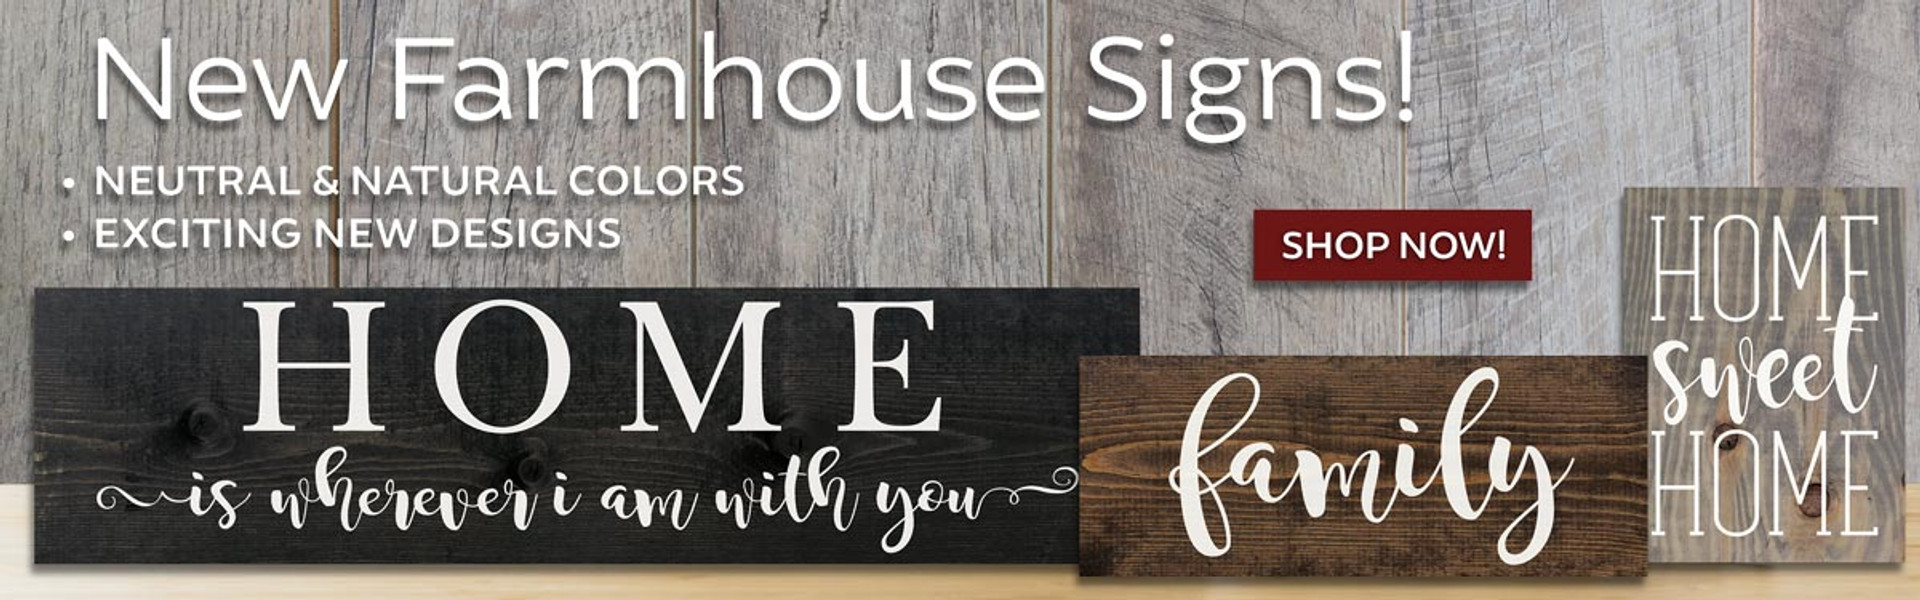 New Farmhouse Signs! Neutral & Natural Colors - Exciting New Designs!